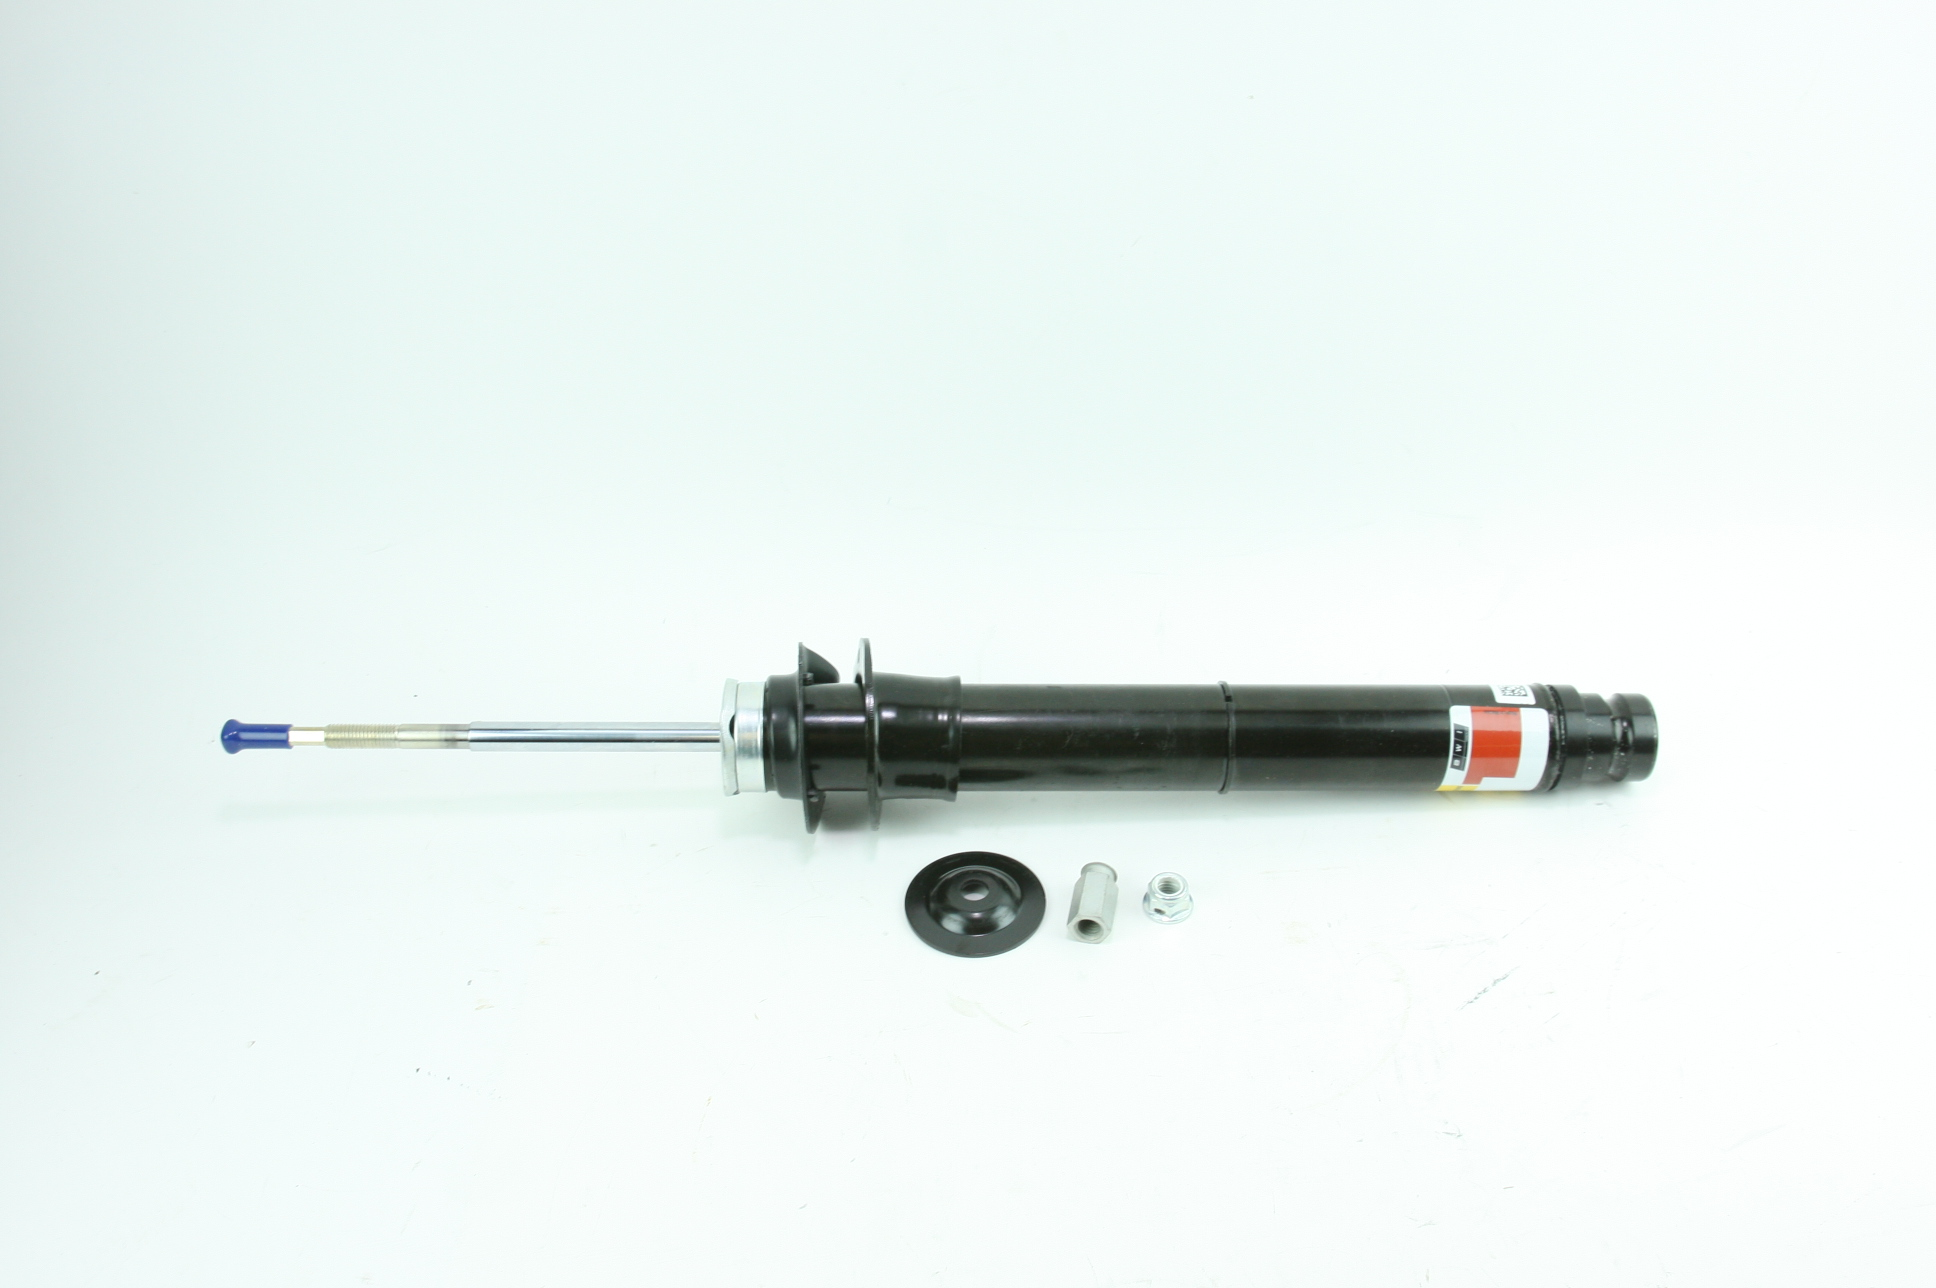 ** New OEM 580-436 GM 19300028 Shock Absorber Kit Front LH/RH 07-10 Cadillac STS - image 1